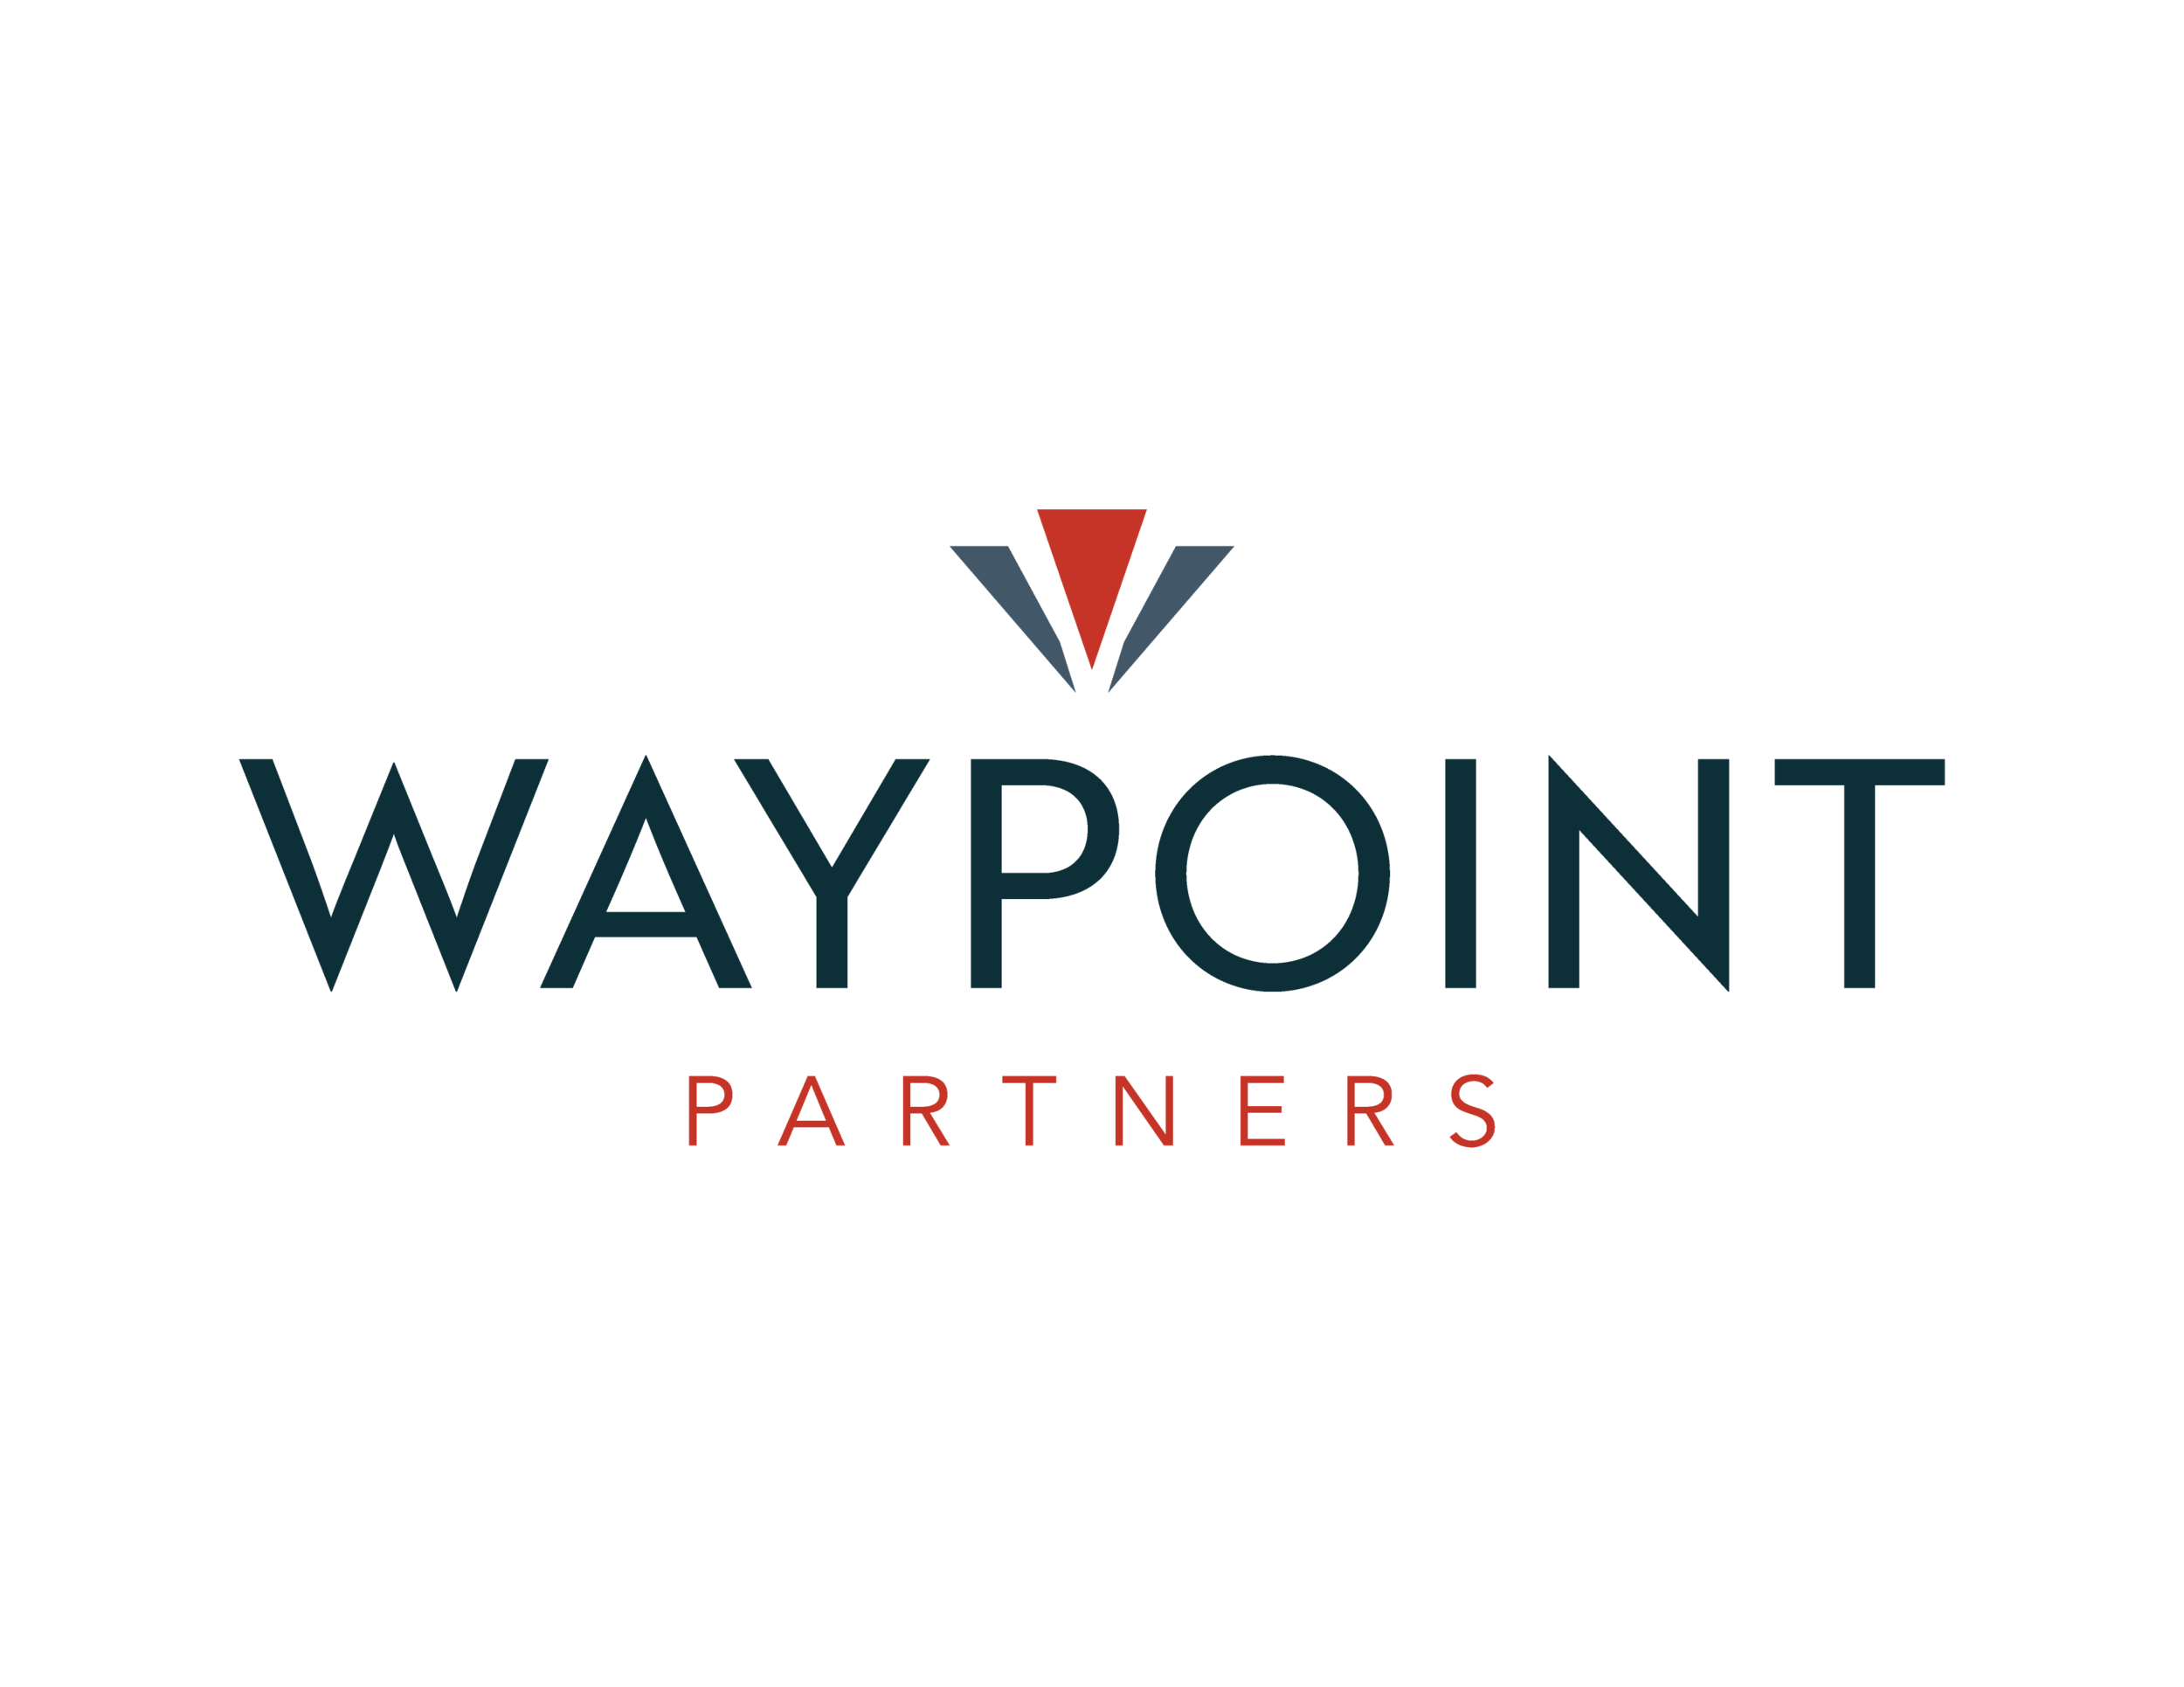 Waypoint Partners_Full Color Logo-04.png